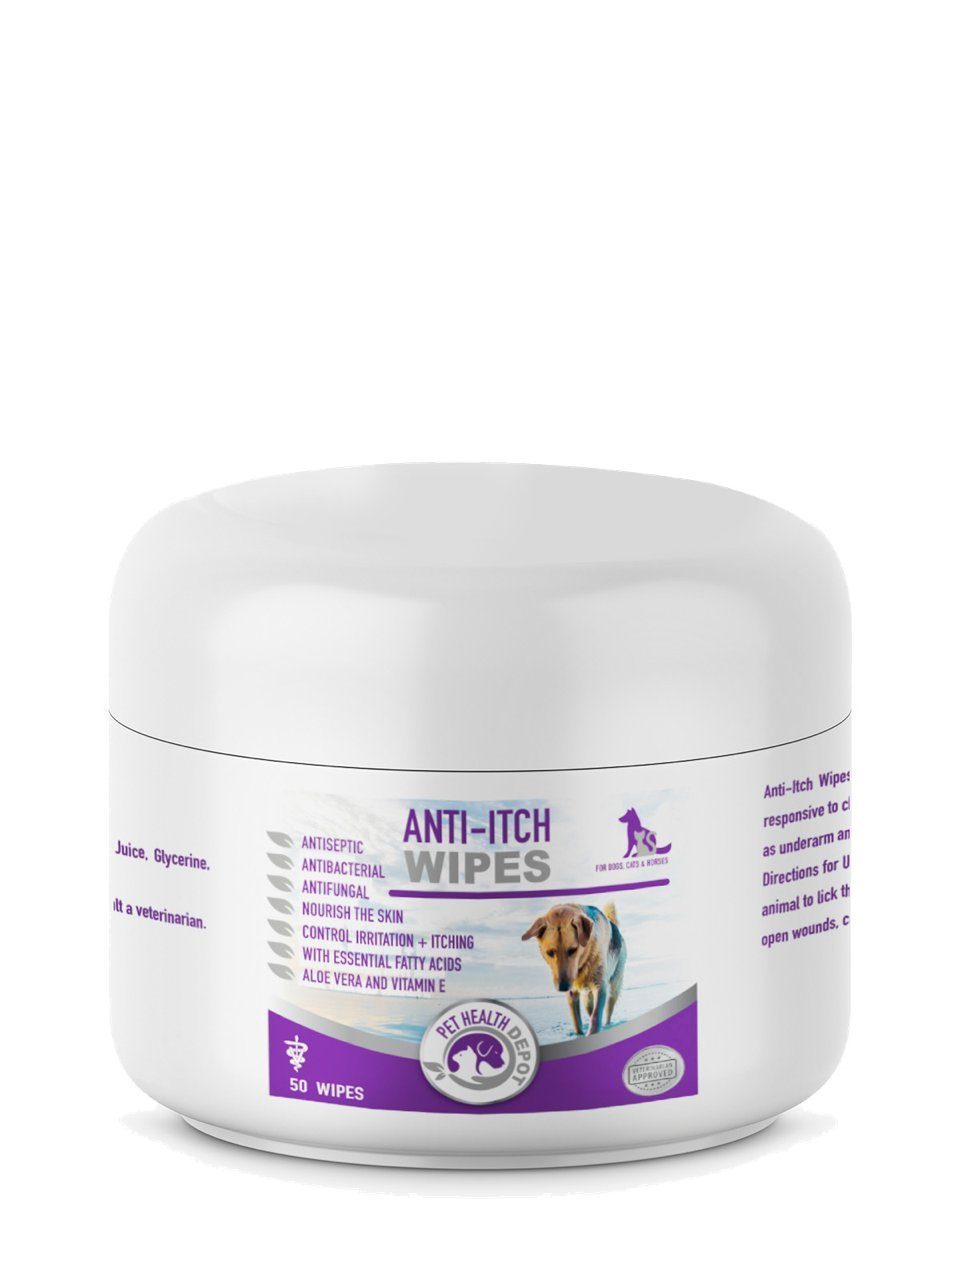 Pet Health Depot Anti-Itch Wipes with Ketoconazole for Dogs and Cats - 50ct